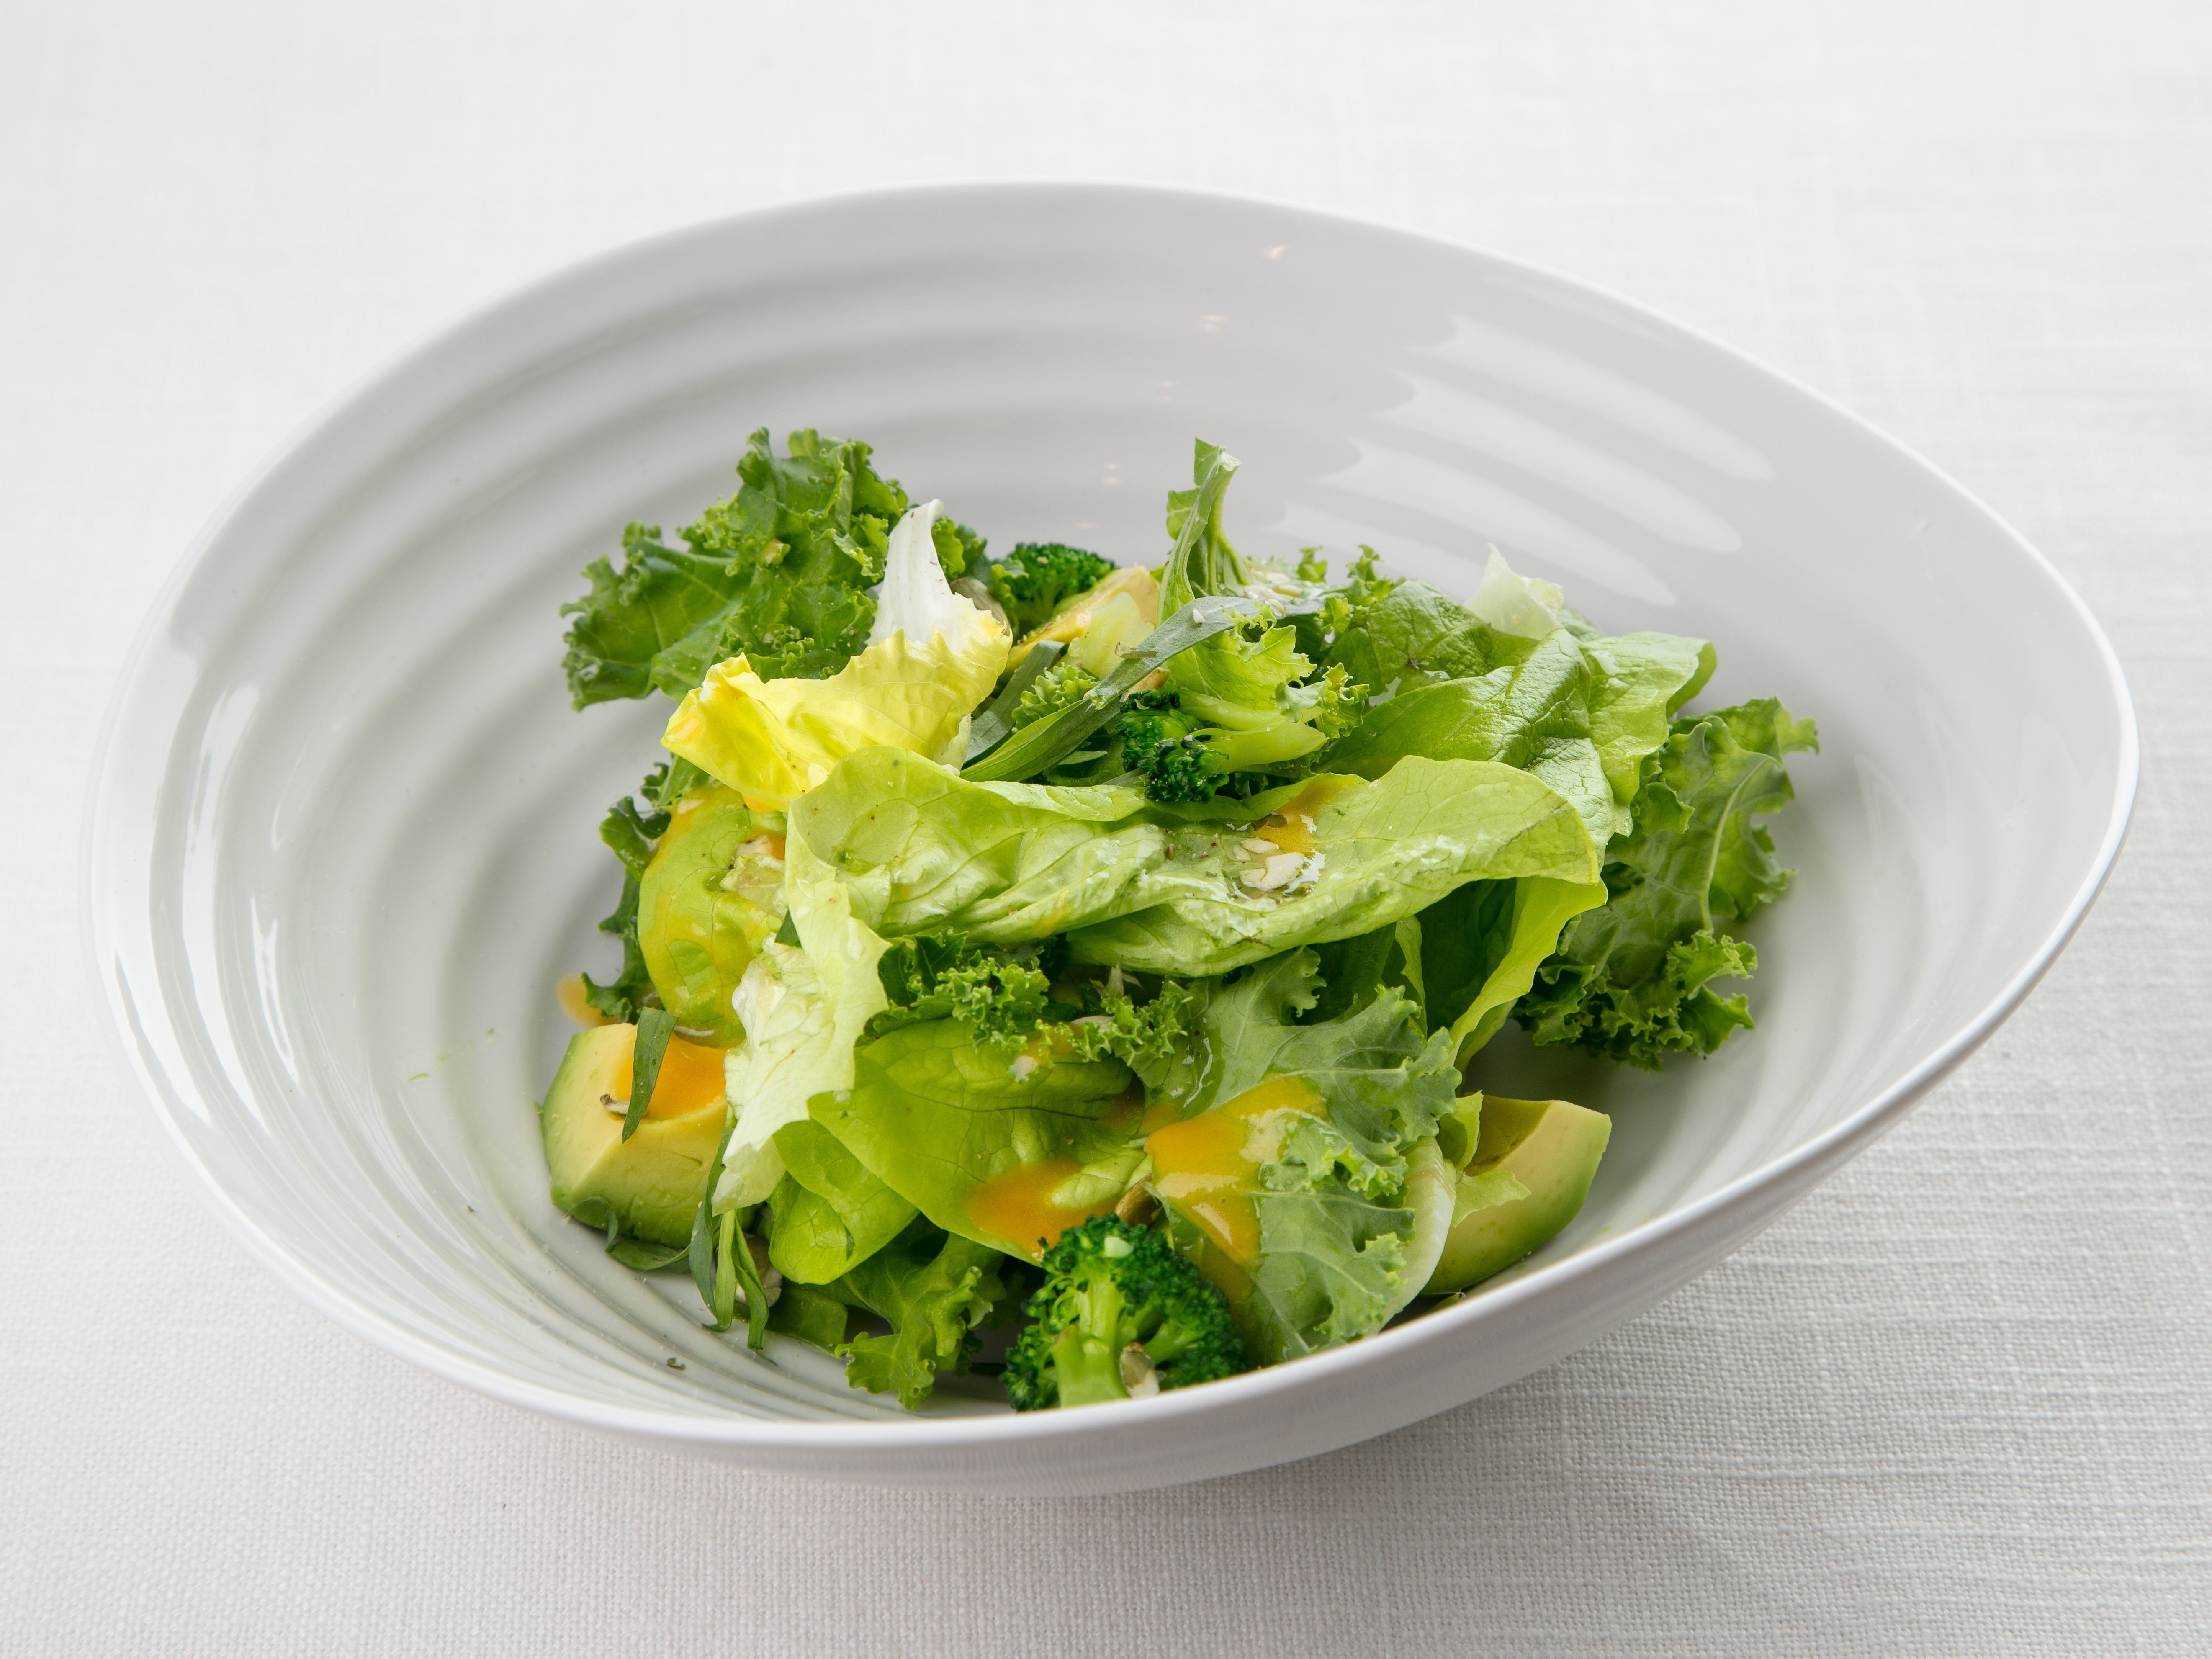 Salad with lettuce, kale, avocado and vegetable sauce